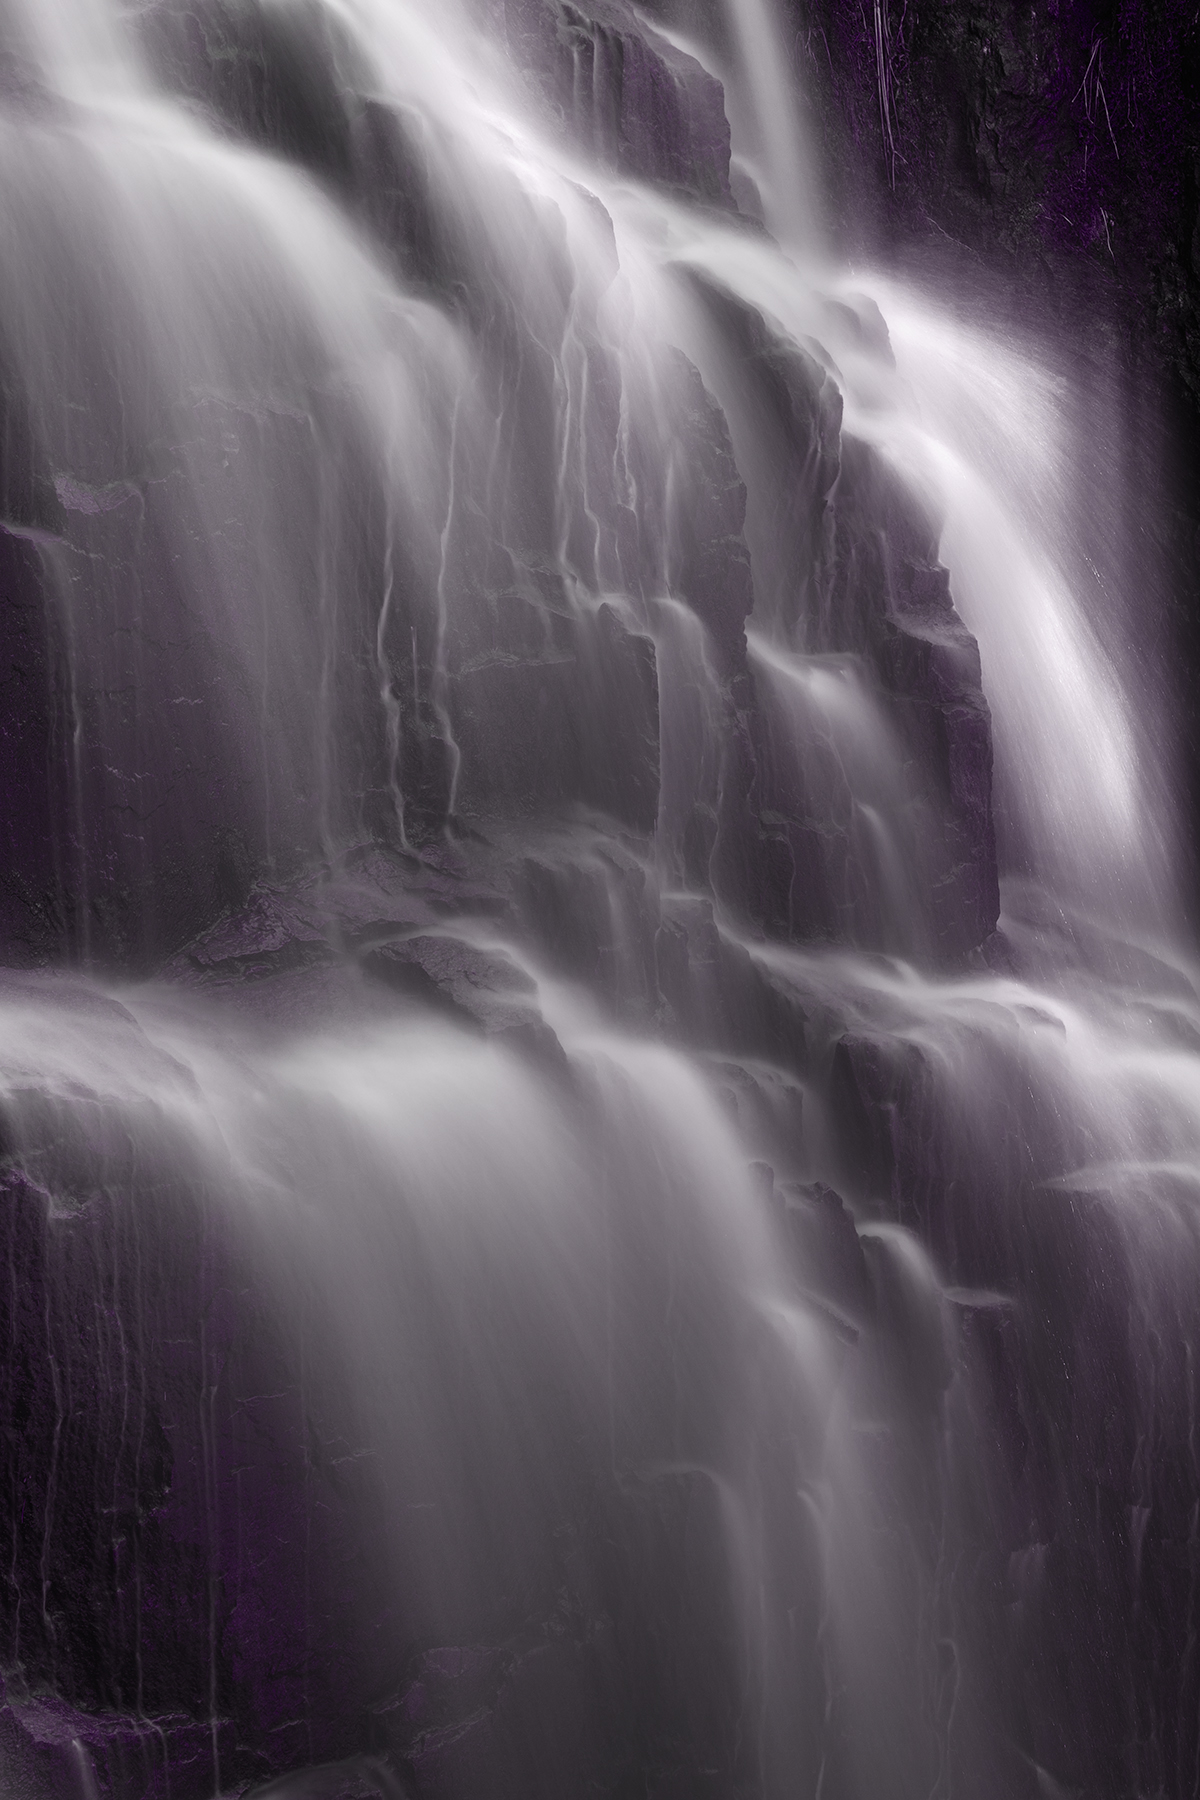 Hadlock nightshade falls - hdr photo